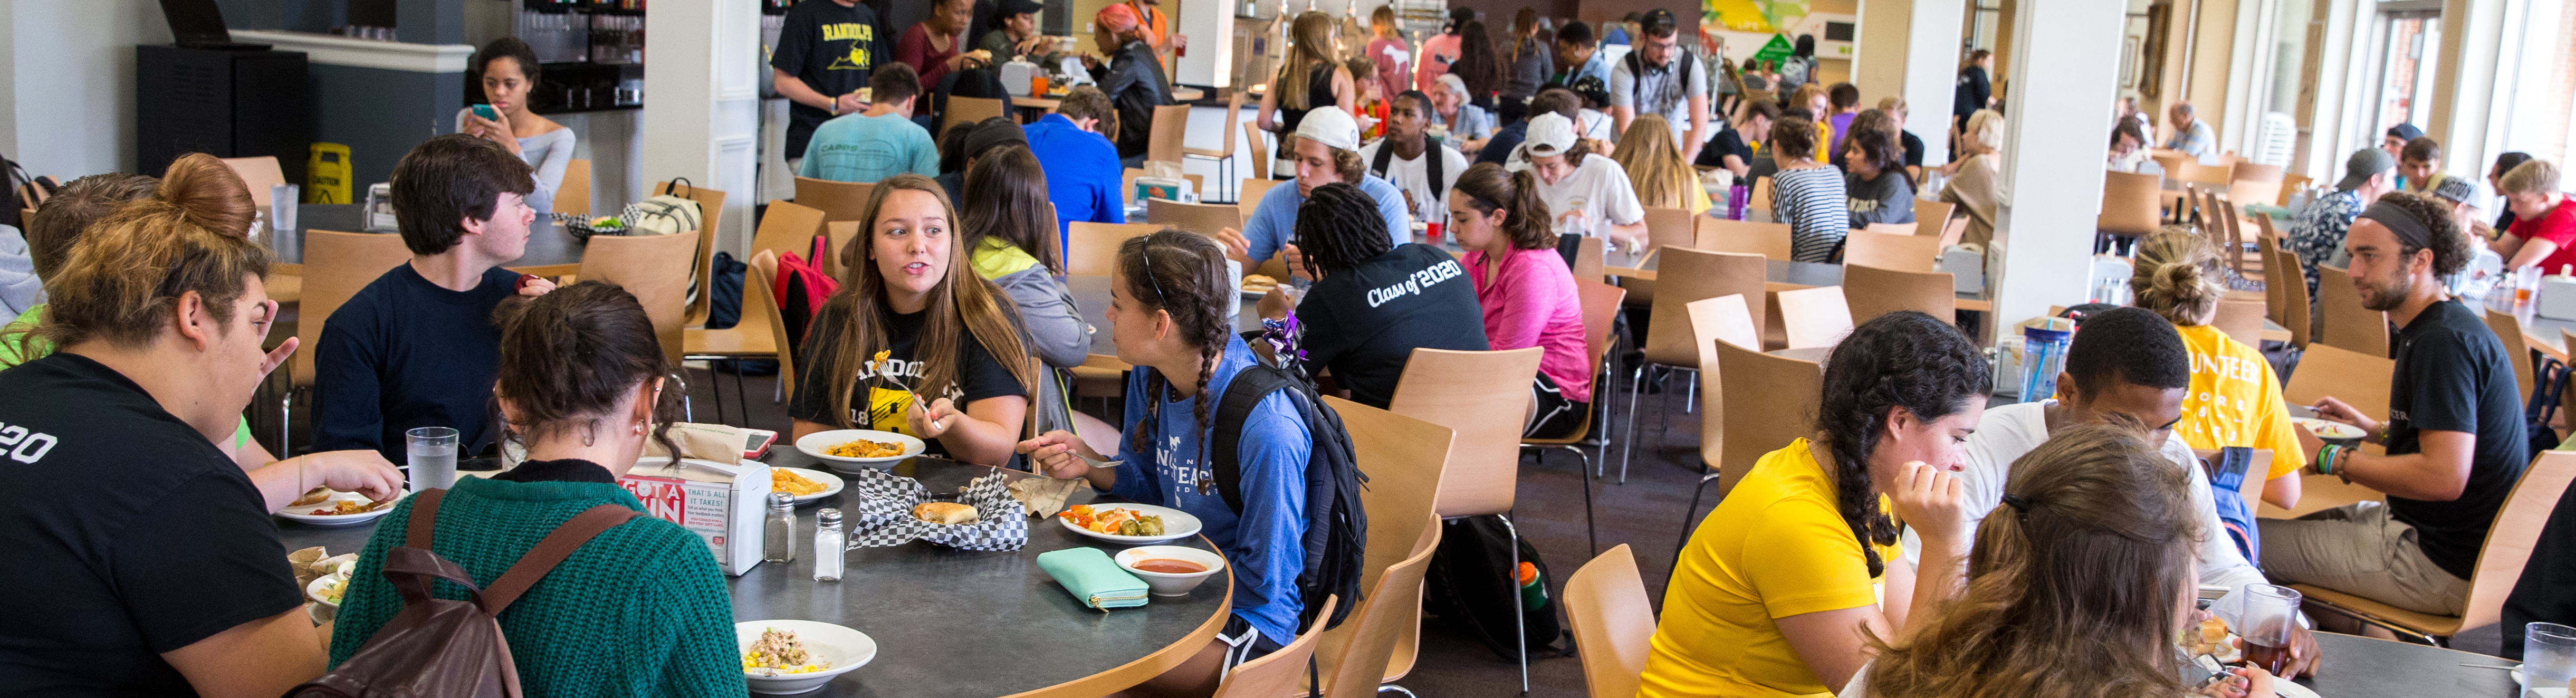 Student in dining hall